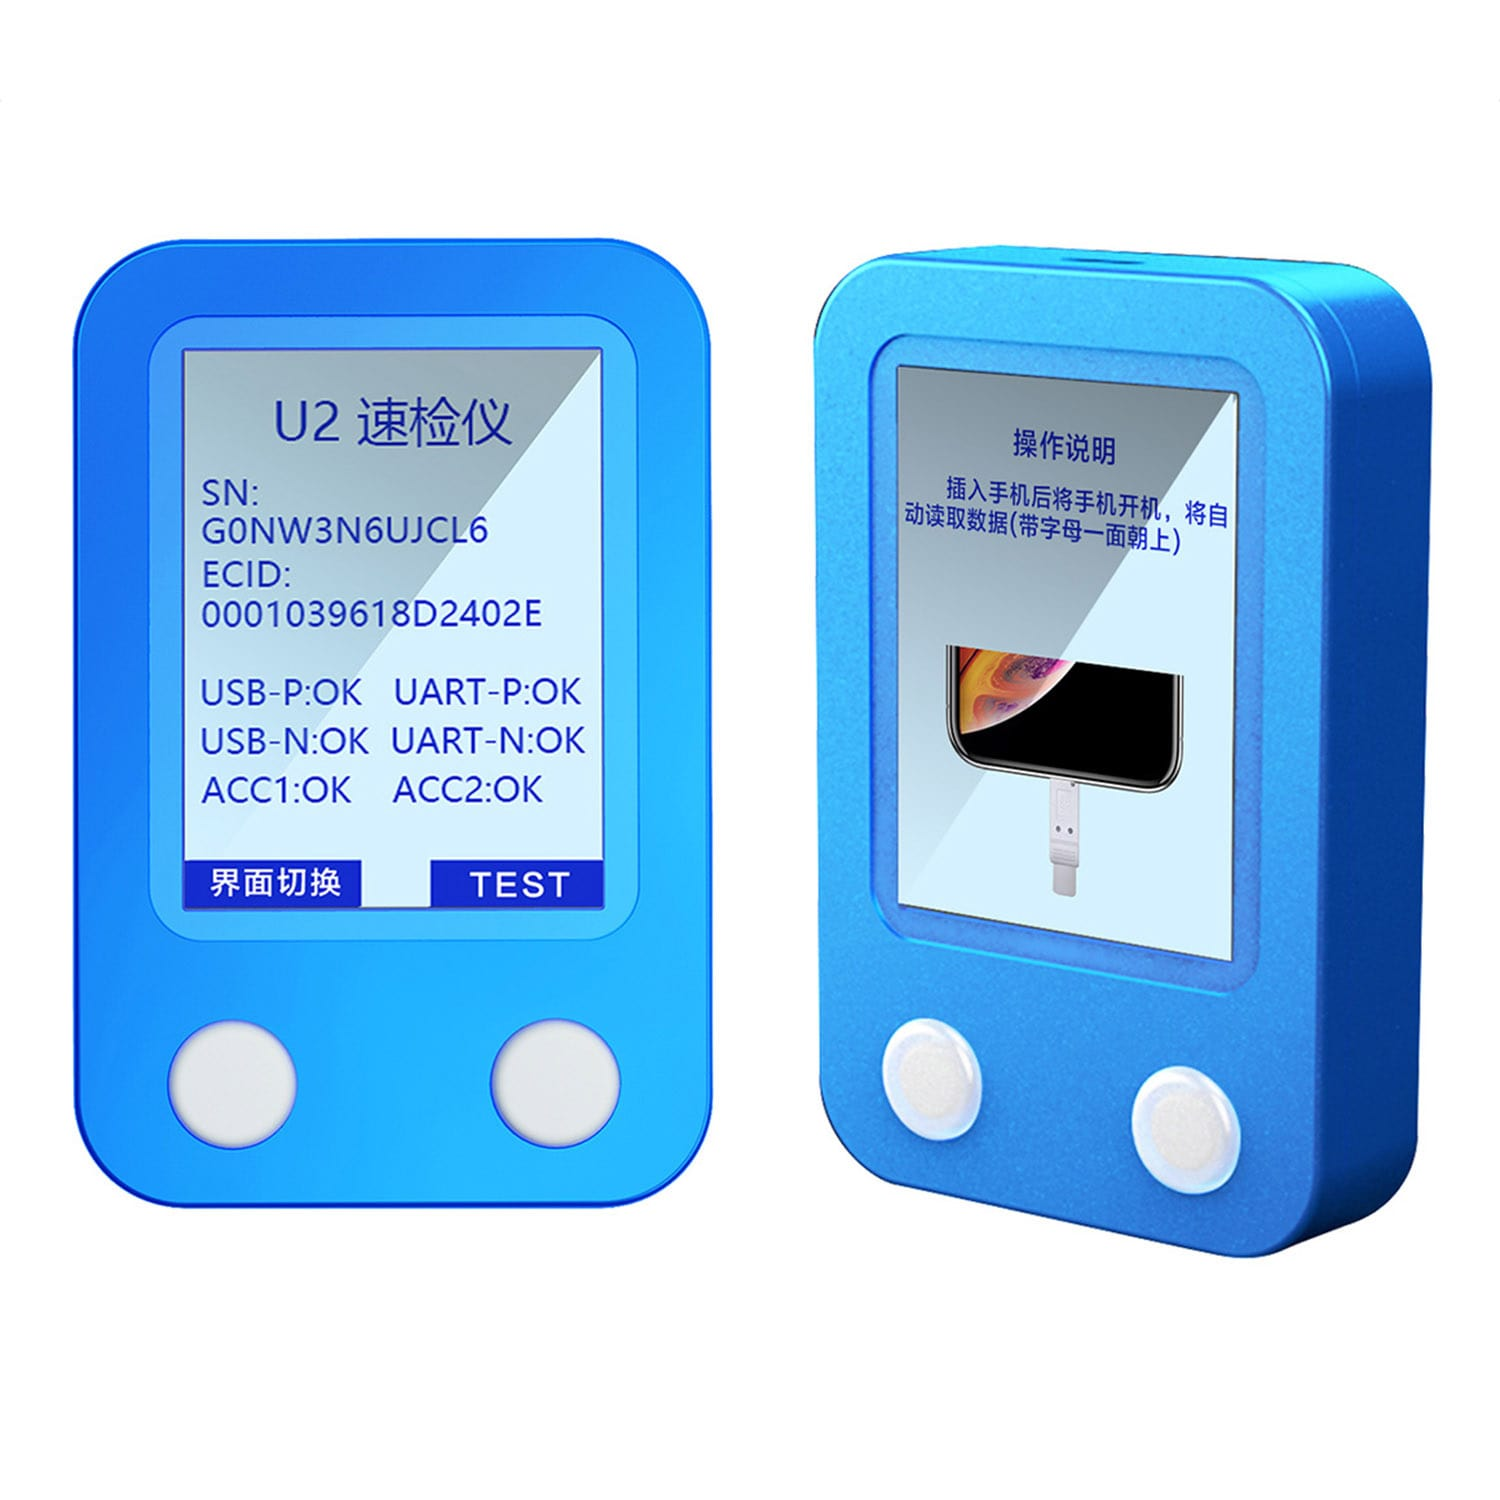 Jc U2 Tristar Tester For Iphone Ipad U2 Charger Ic And Sn